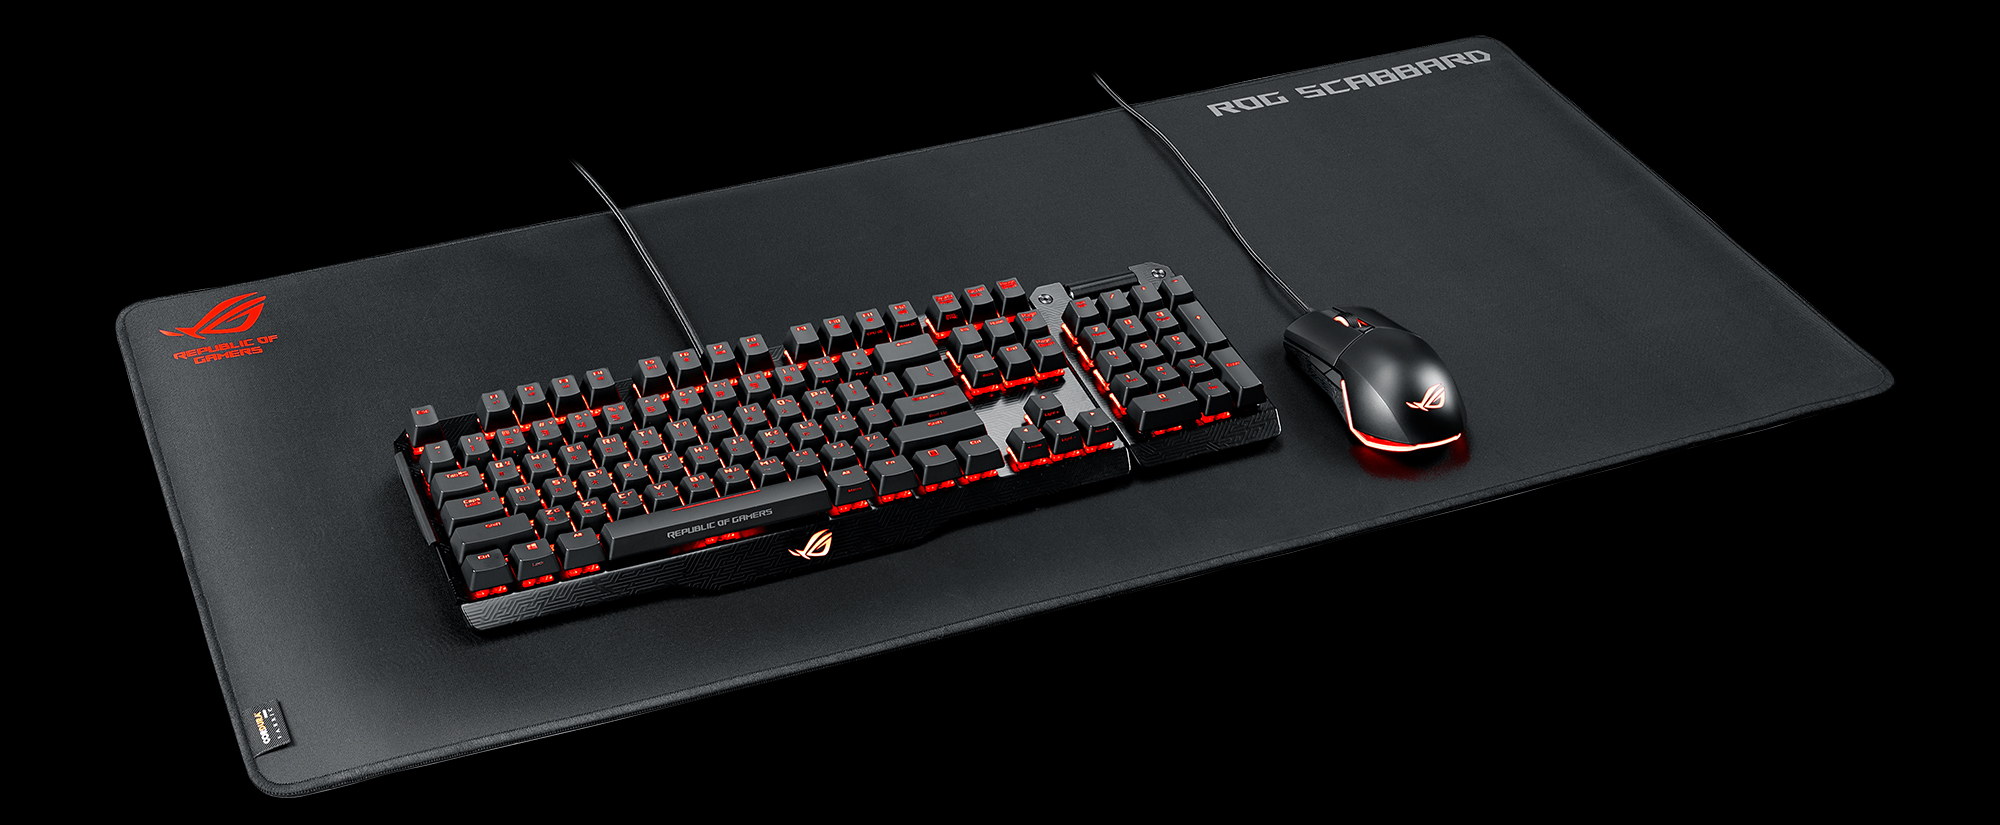 ROG-Scabbard-3D-Extended-Mouse-Pad